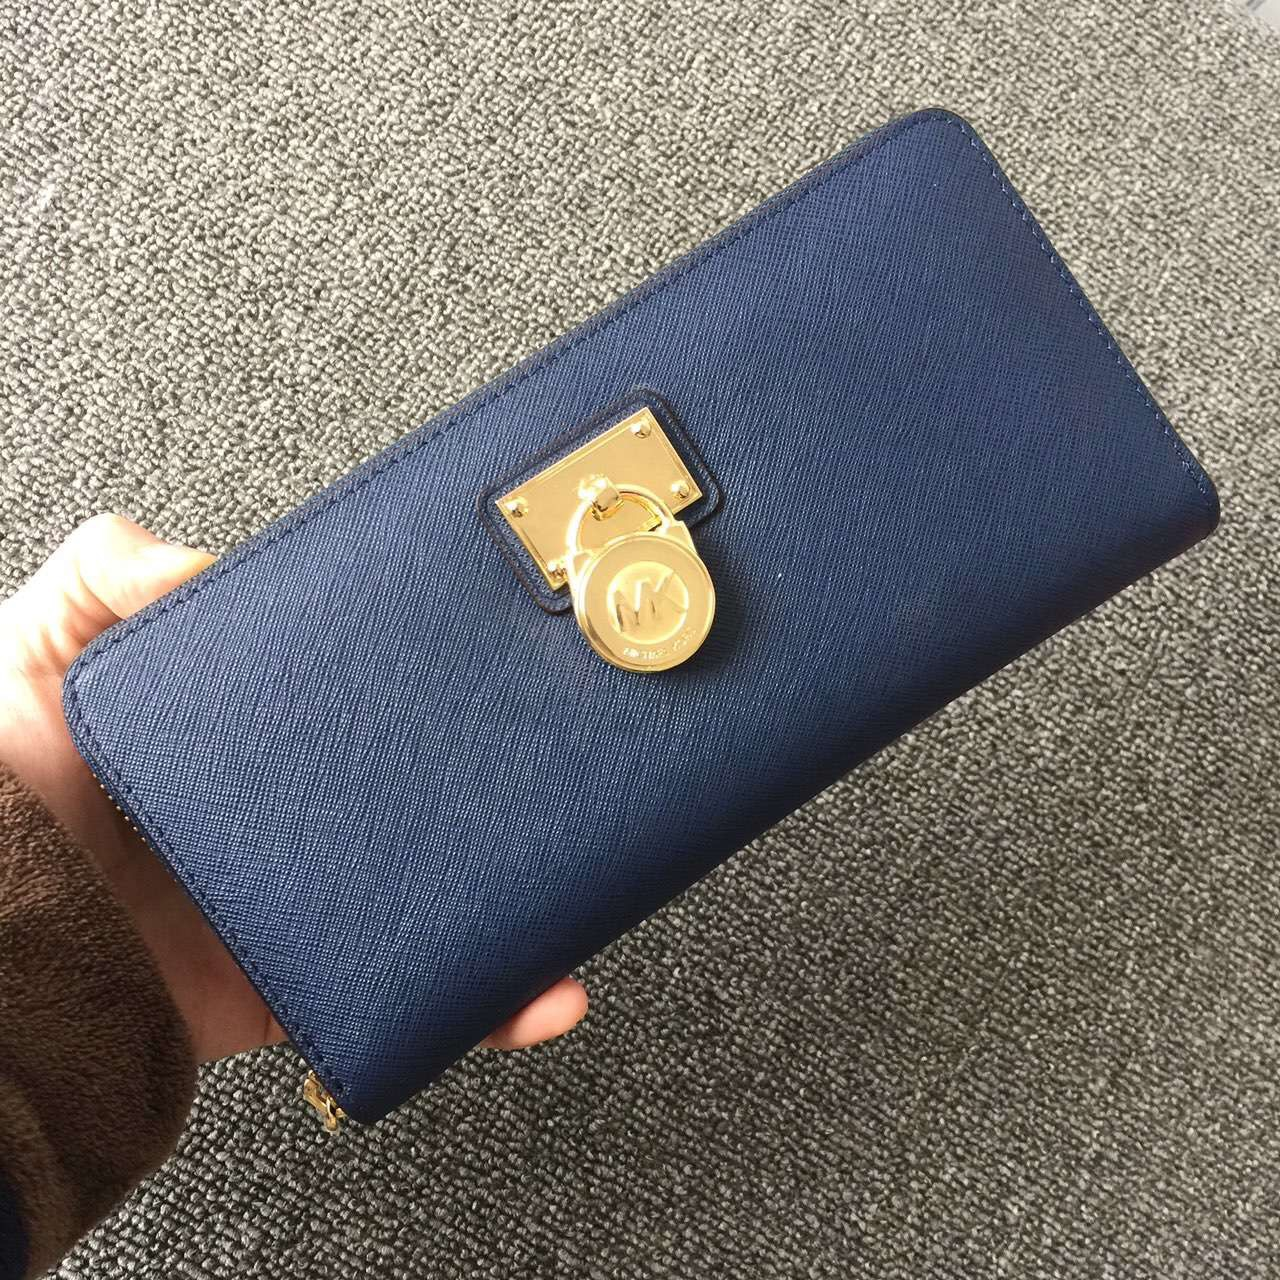 2017 New Michael Kors Lock Women Small Wallets Blue